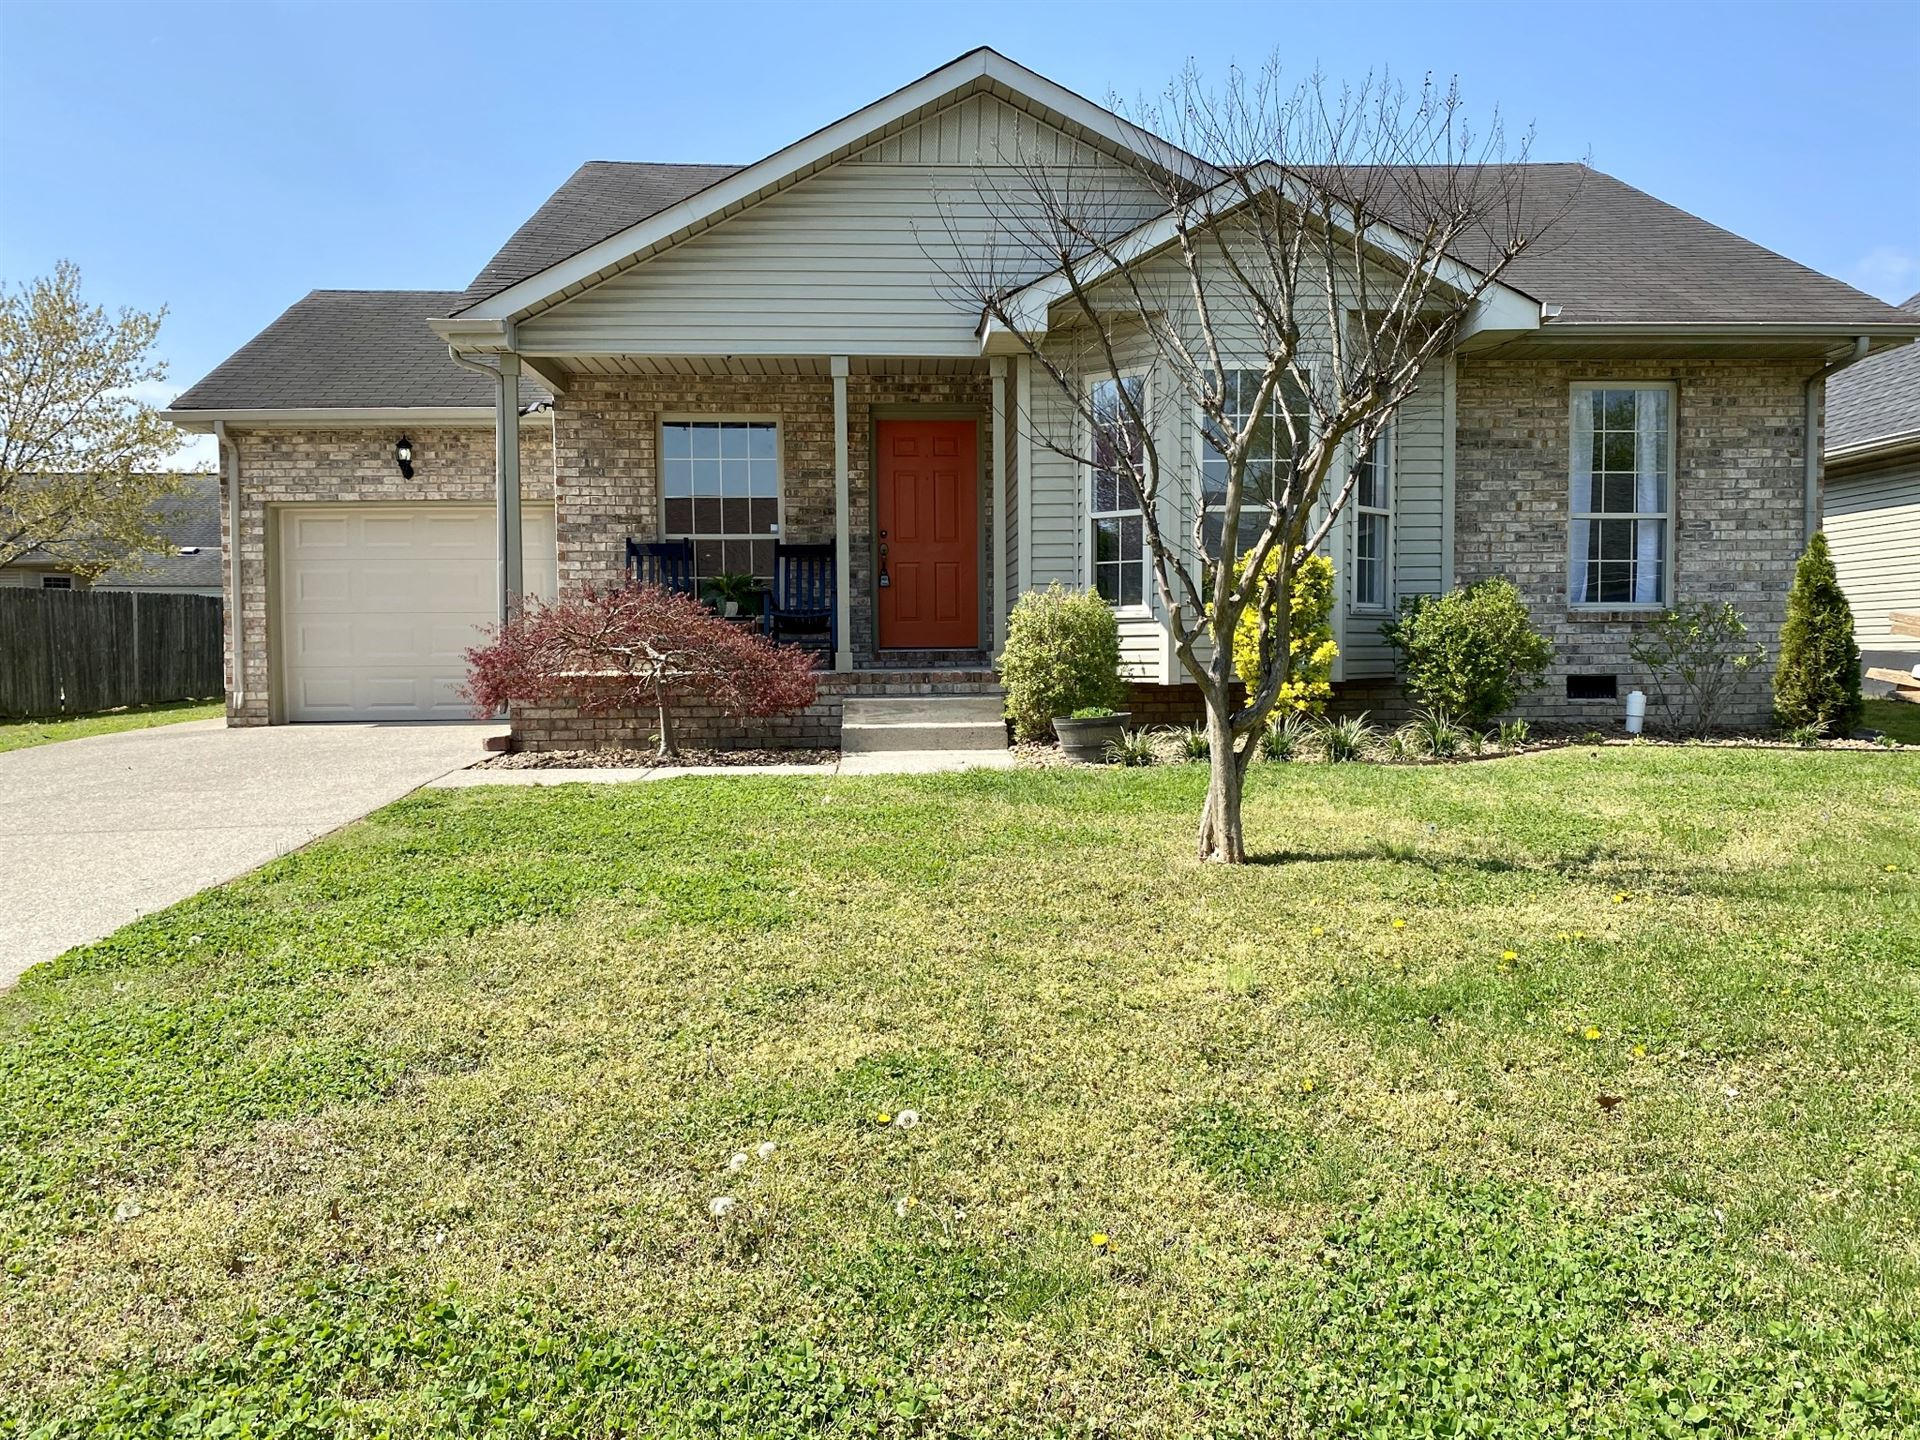 2516 Park Green Ln, Old Hickory, TN 37138 - MLS#: 2242878